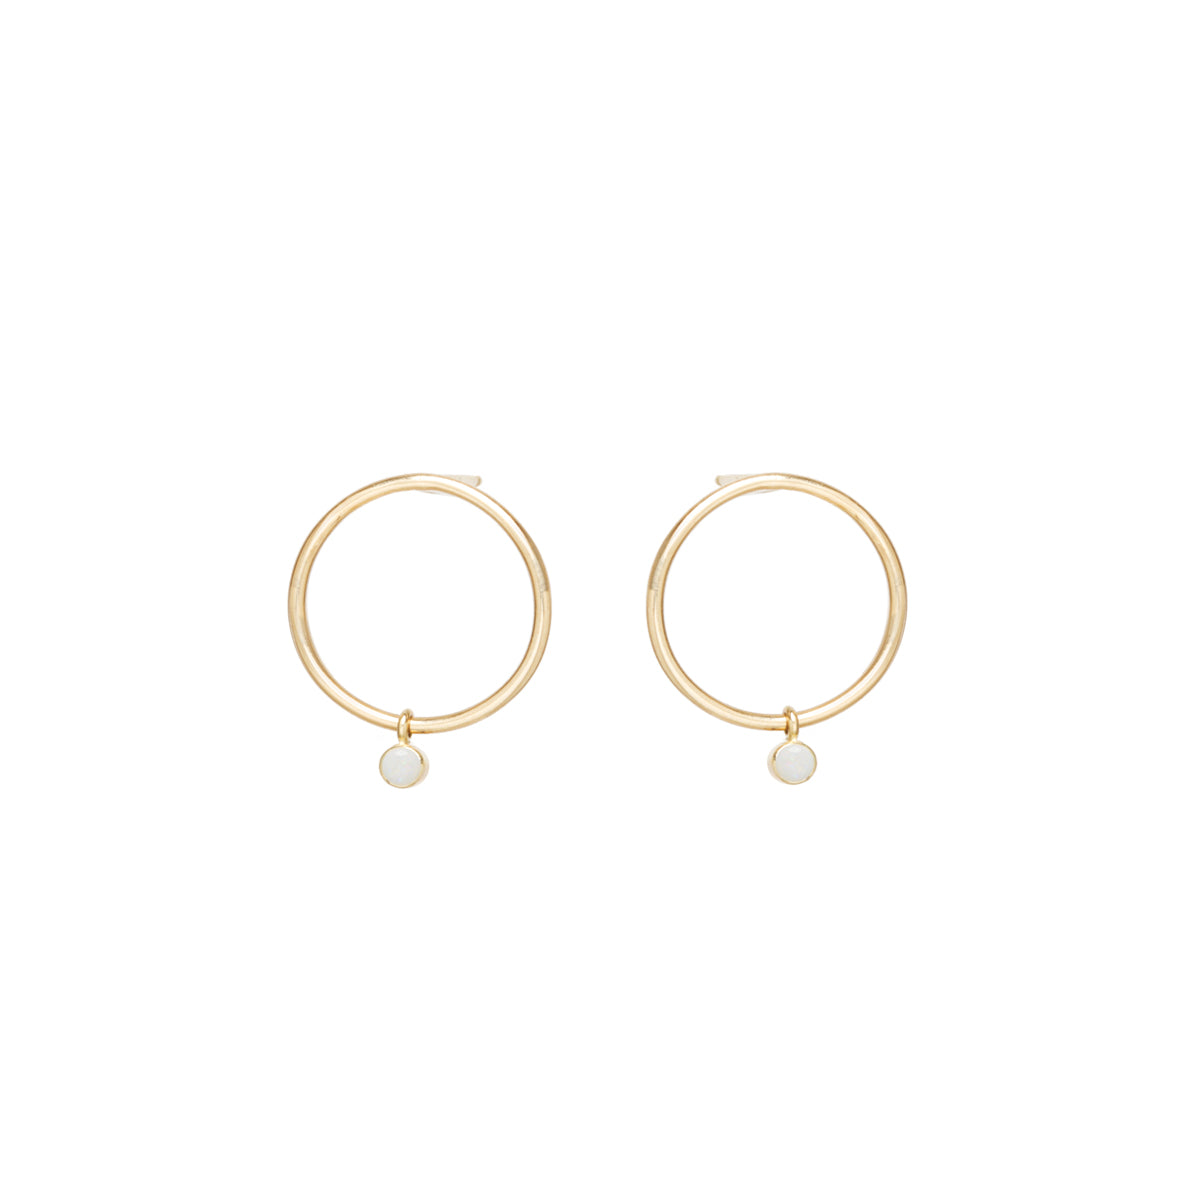 Zoë Chicco 14kt Yellow Gold Dangling Bezel Set Opal Small Circle Stud Earrings